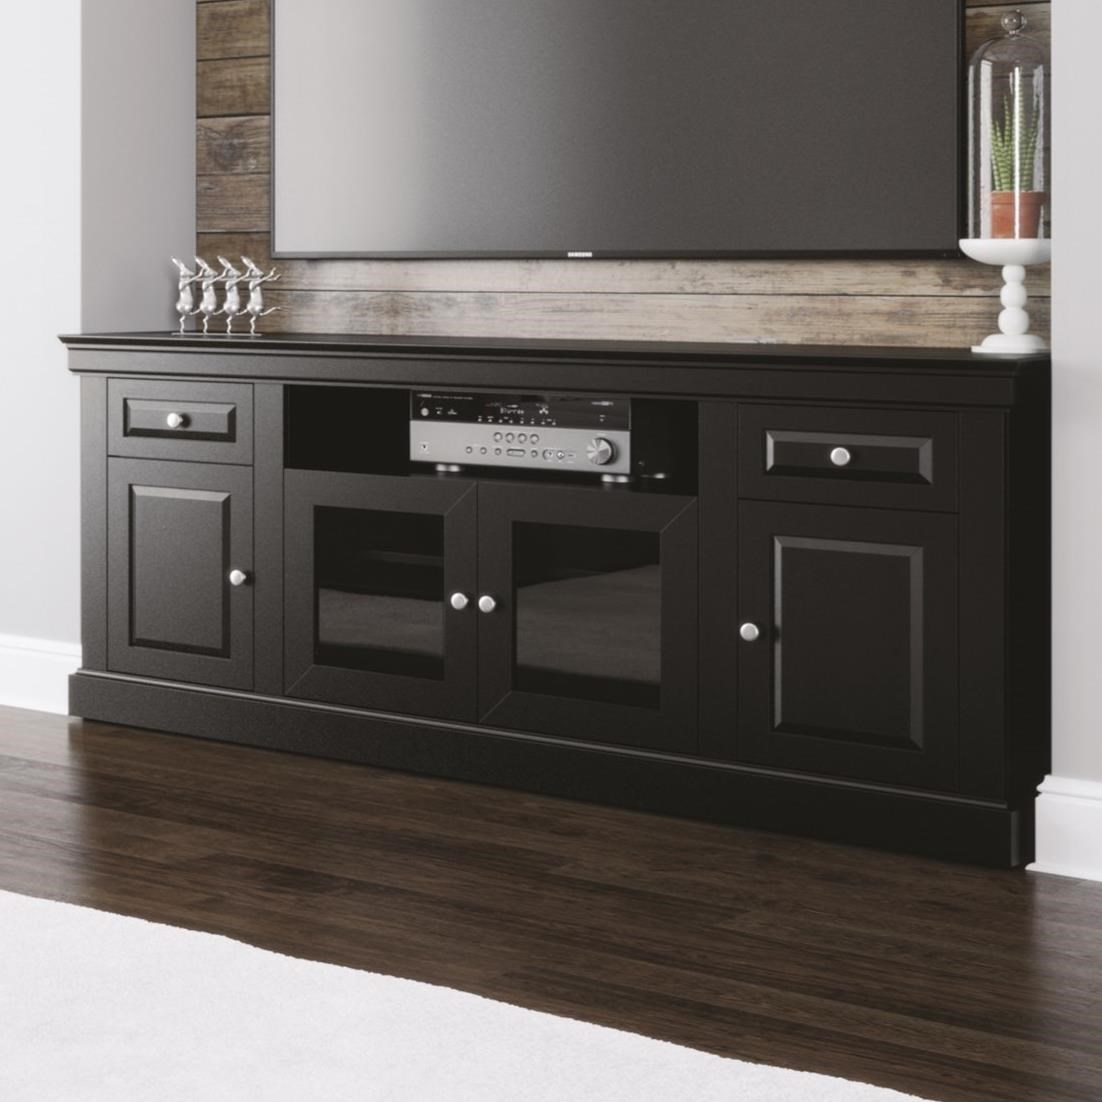 Canadel Living Customizable Media Unit by Canadel at Jordan's Home Furnishings